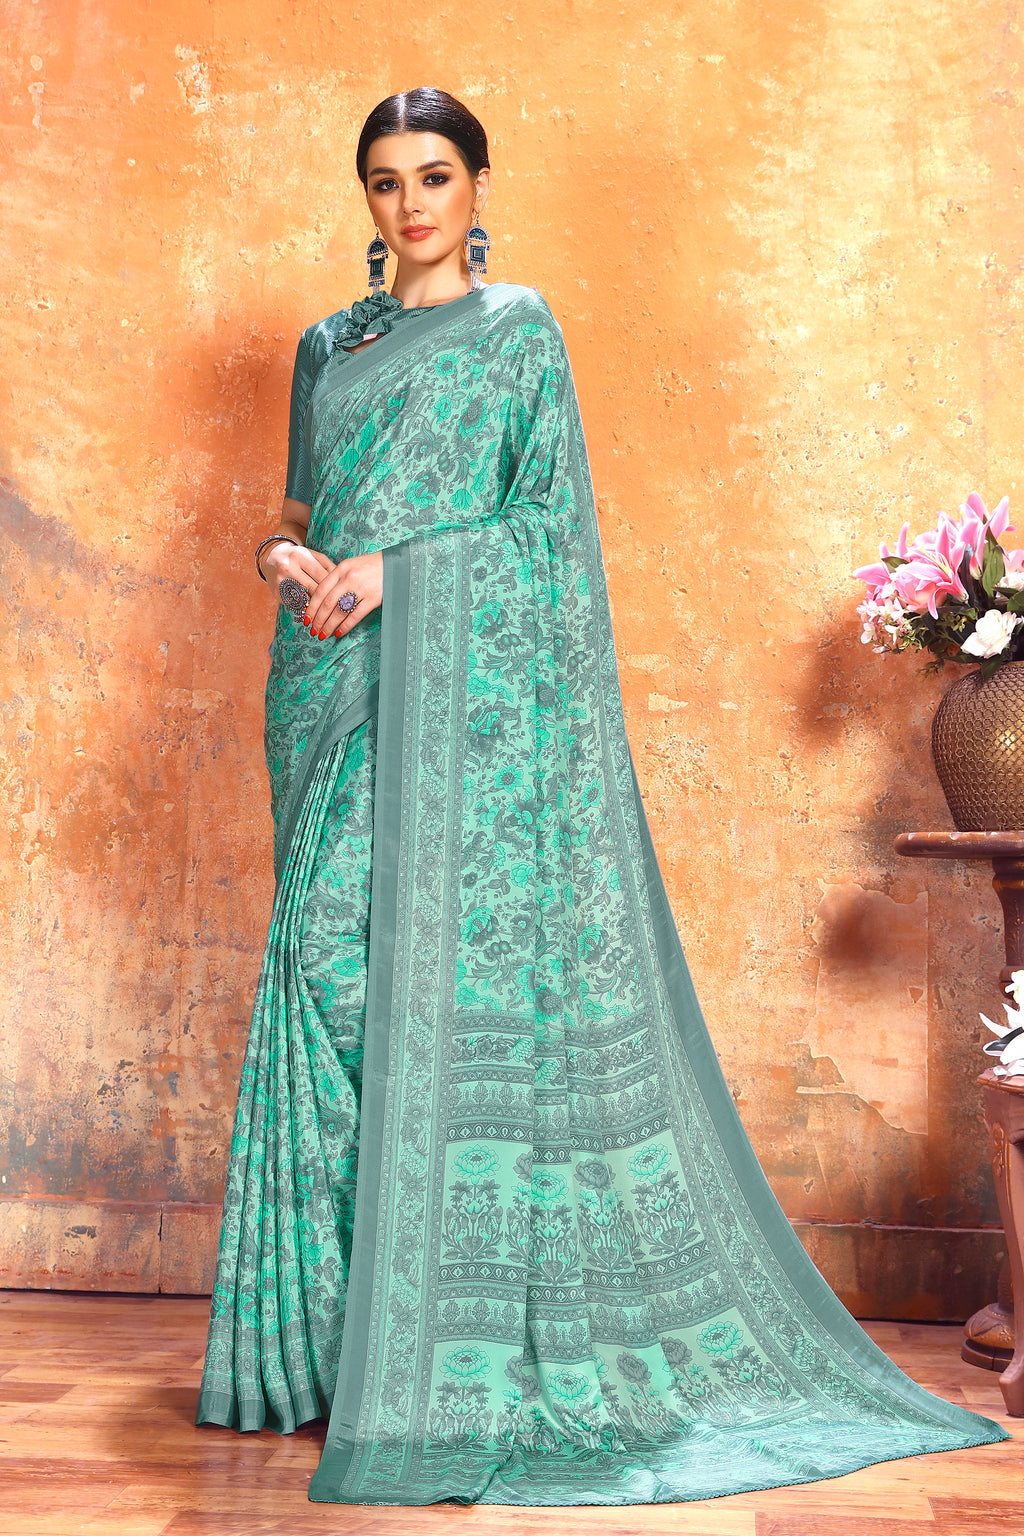 Light Aqua Green Color Crepe  Kitty Party Sarees NYF-8076